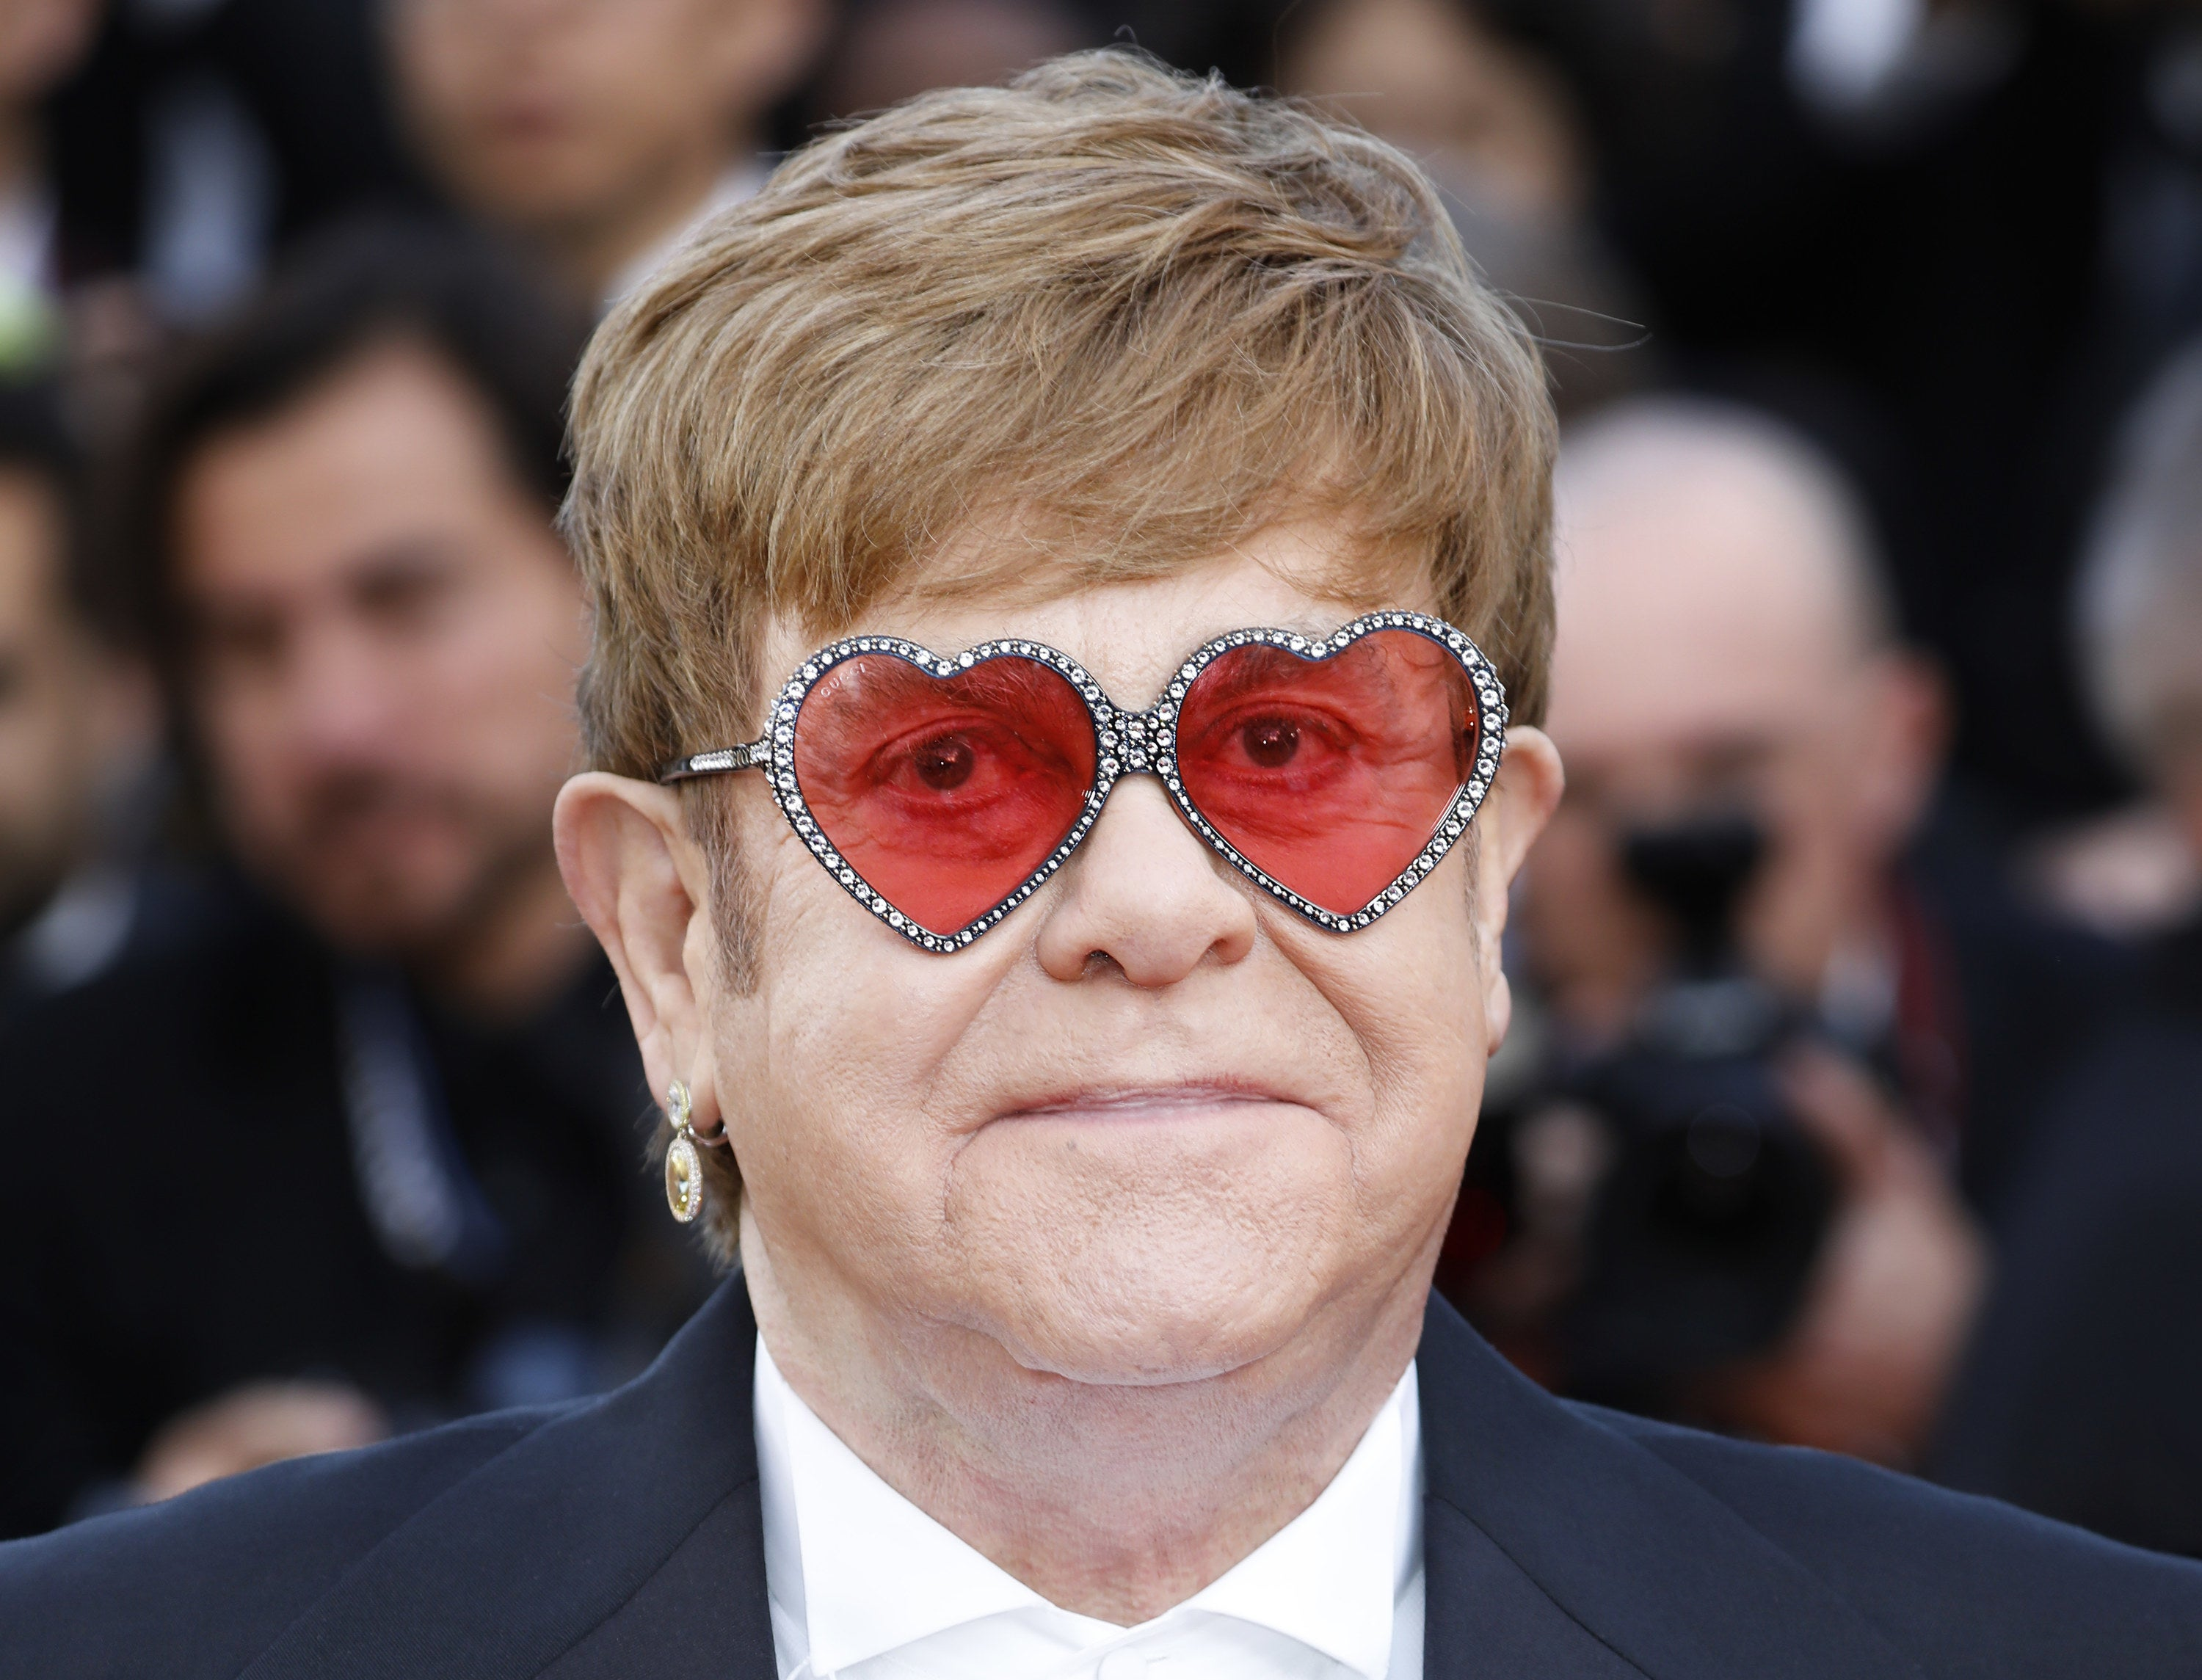 Photo of Elton John in heart-shaped sunglasses and a suit